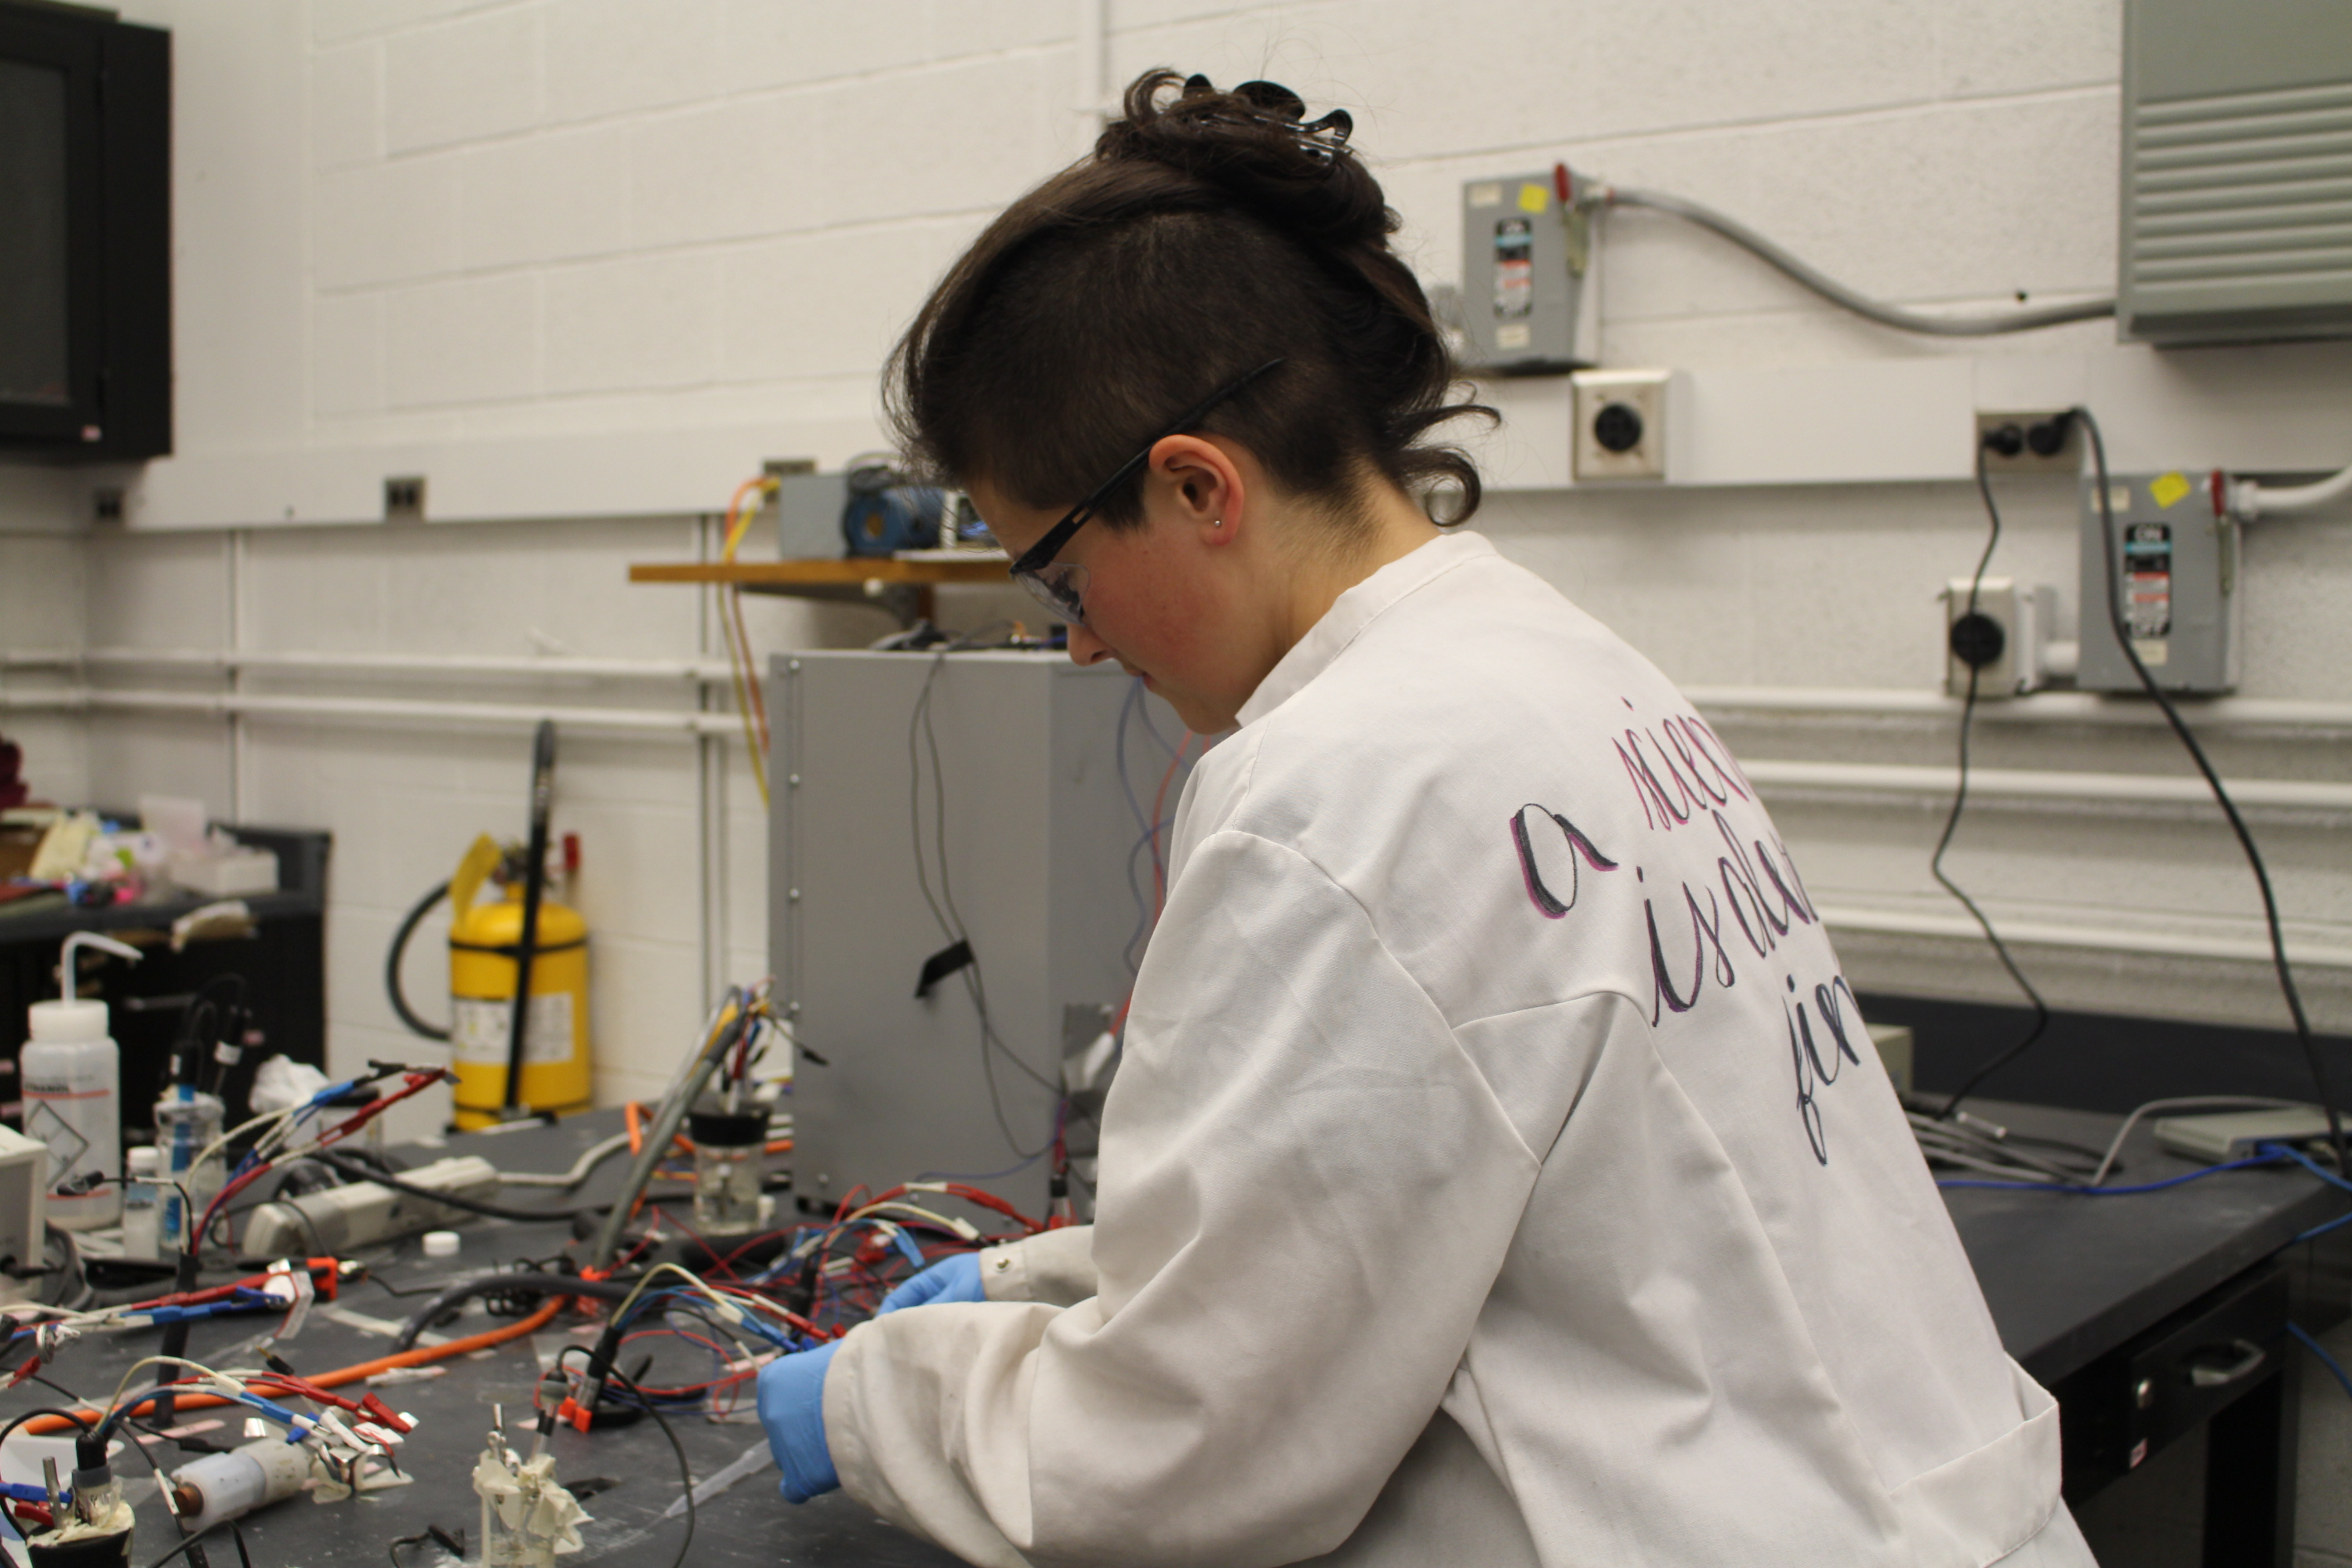 """""""I'm socialized female, I'm read female most of the time, and that really affects my experience in STEM,"""" says Sarah Frisco, a PhD student in materials science who researches lithium batteries. """"What's most important to me is getting my science done."""" (credit: Lisa Qian/Photo Editor)"""